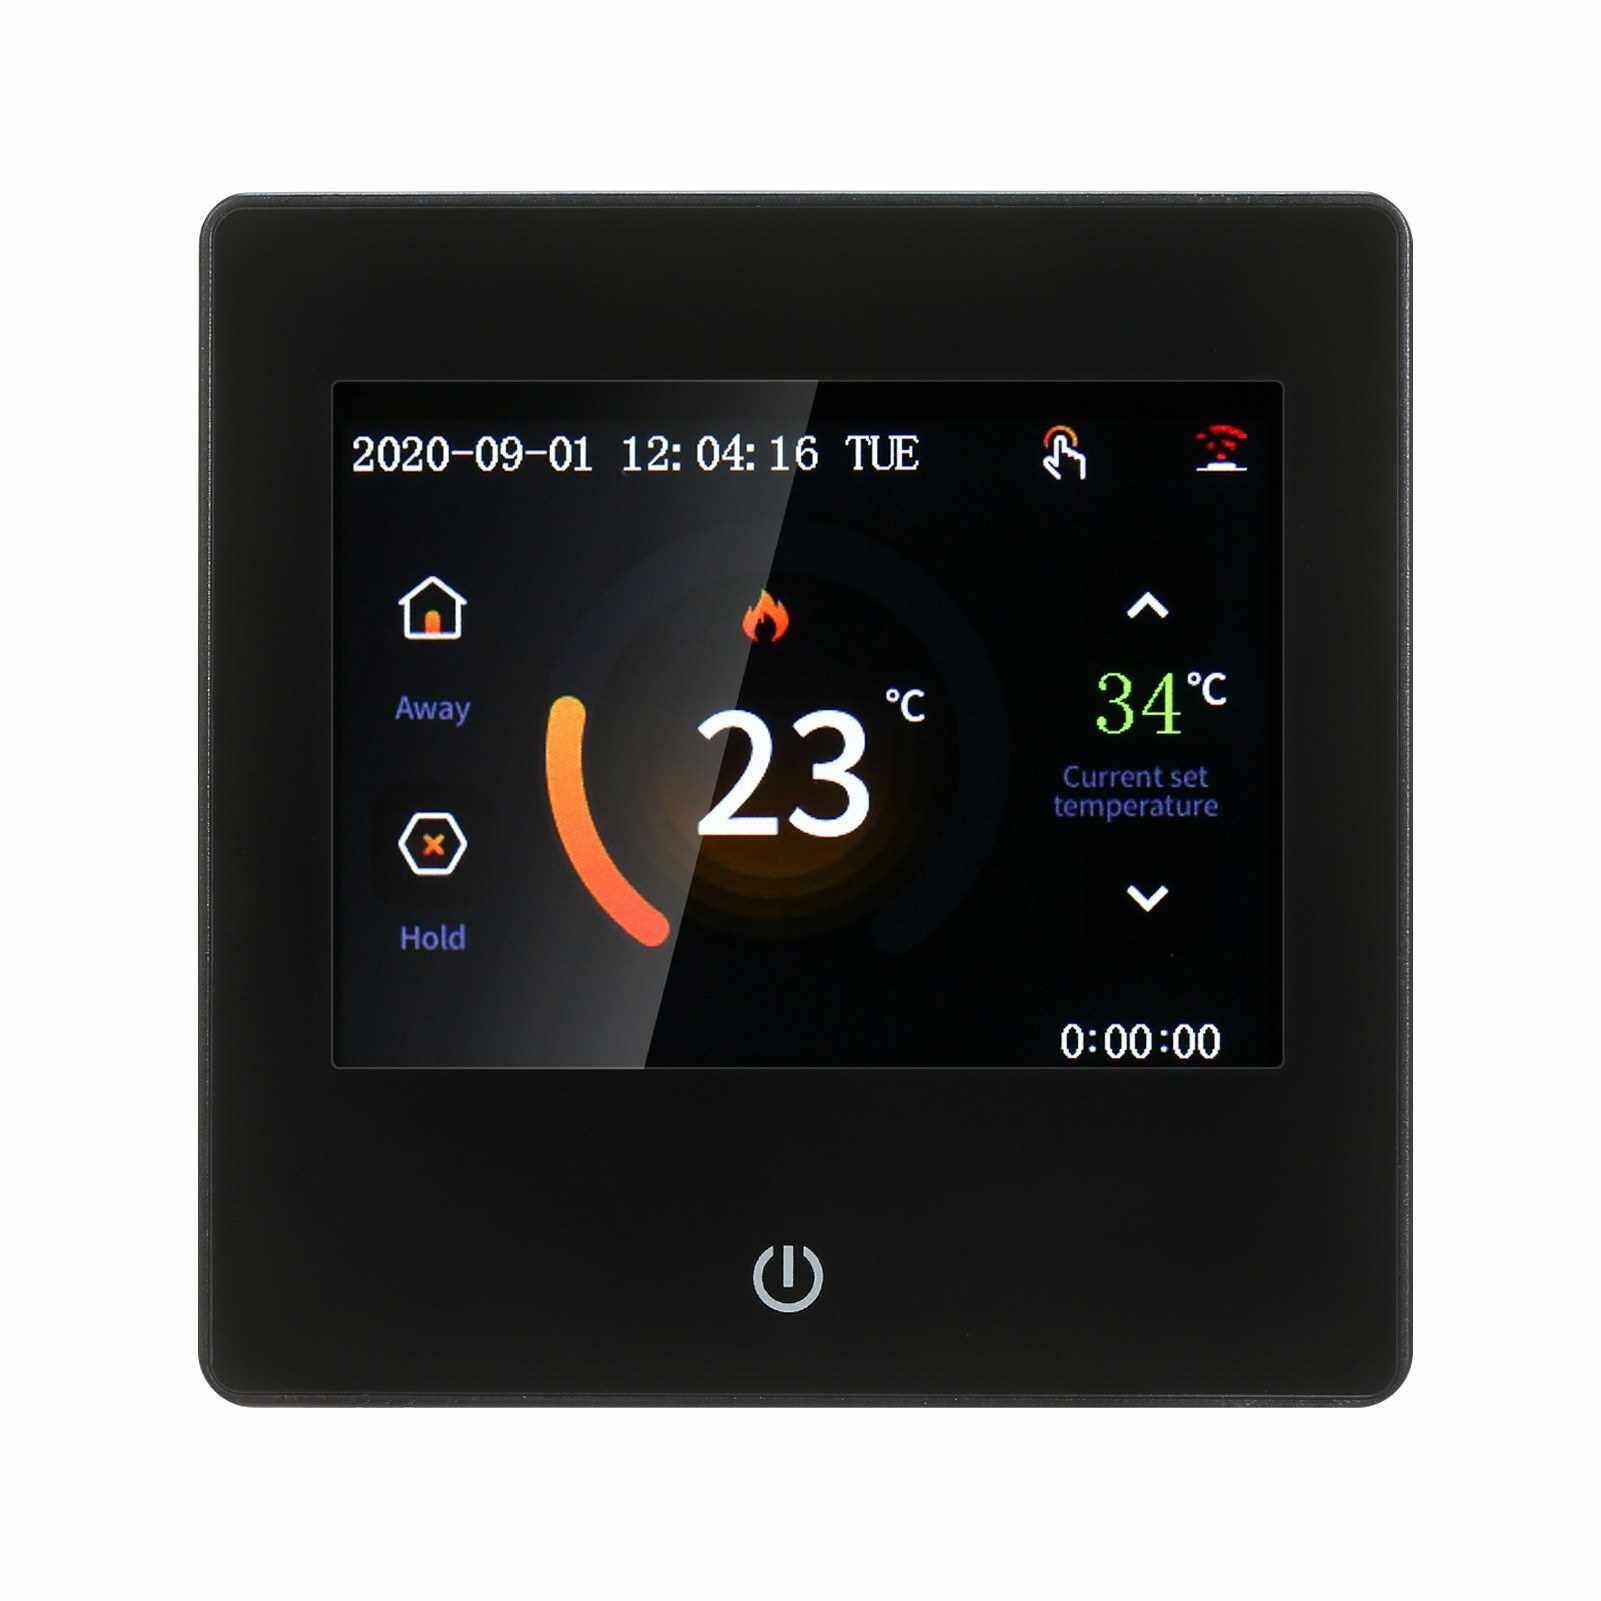 Smart Thermostat LCD Touch-screen Weekly Programmable Thermostat with WIFI Electric Heating 16A Digital Temperature Controller for Home School Office Hotel Black (Black)